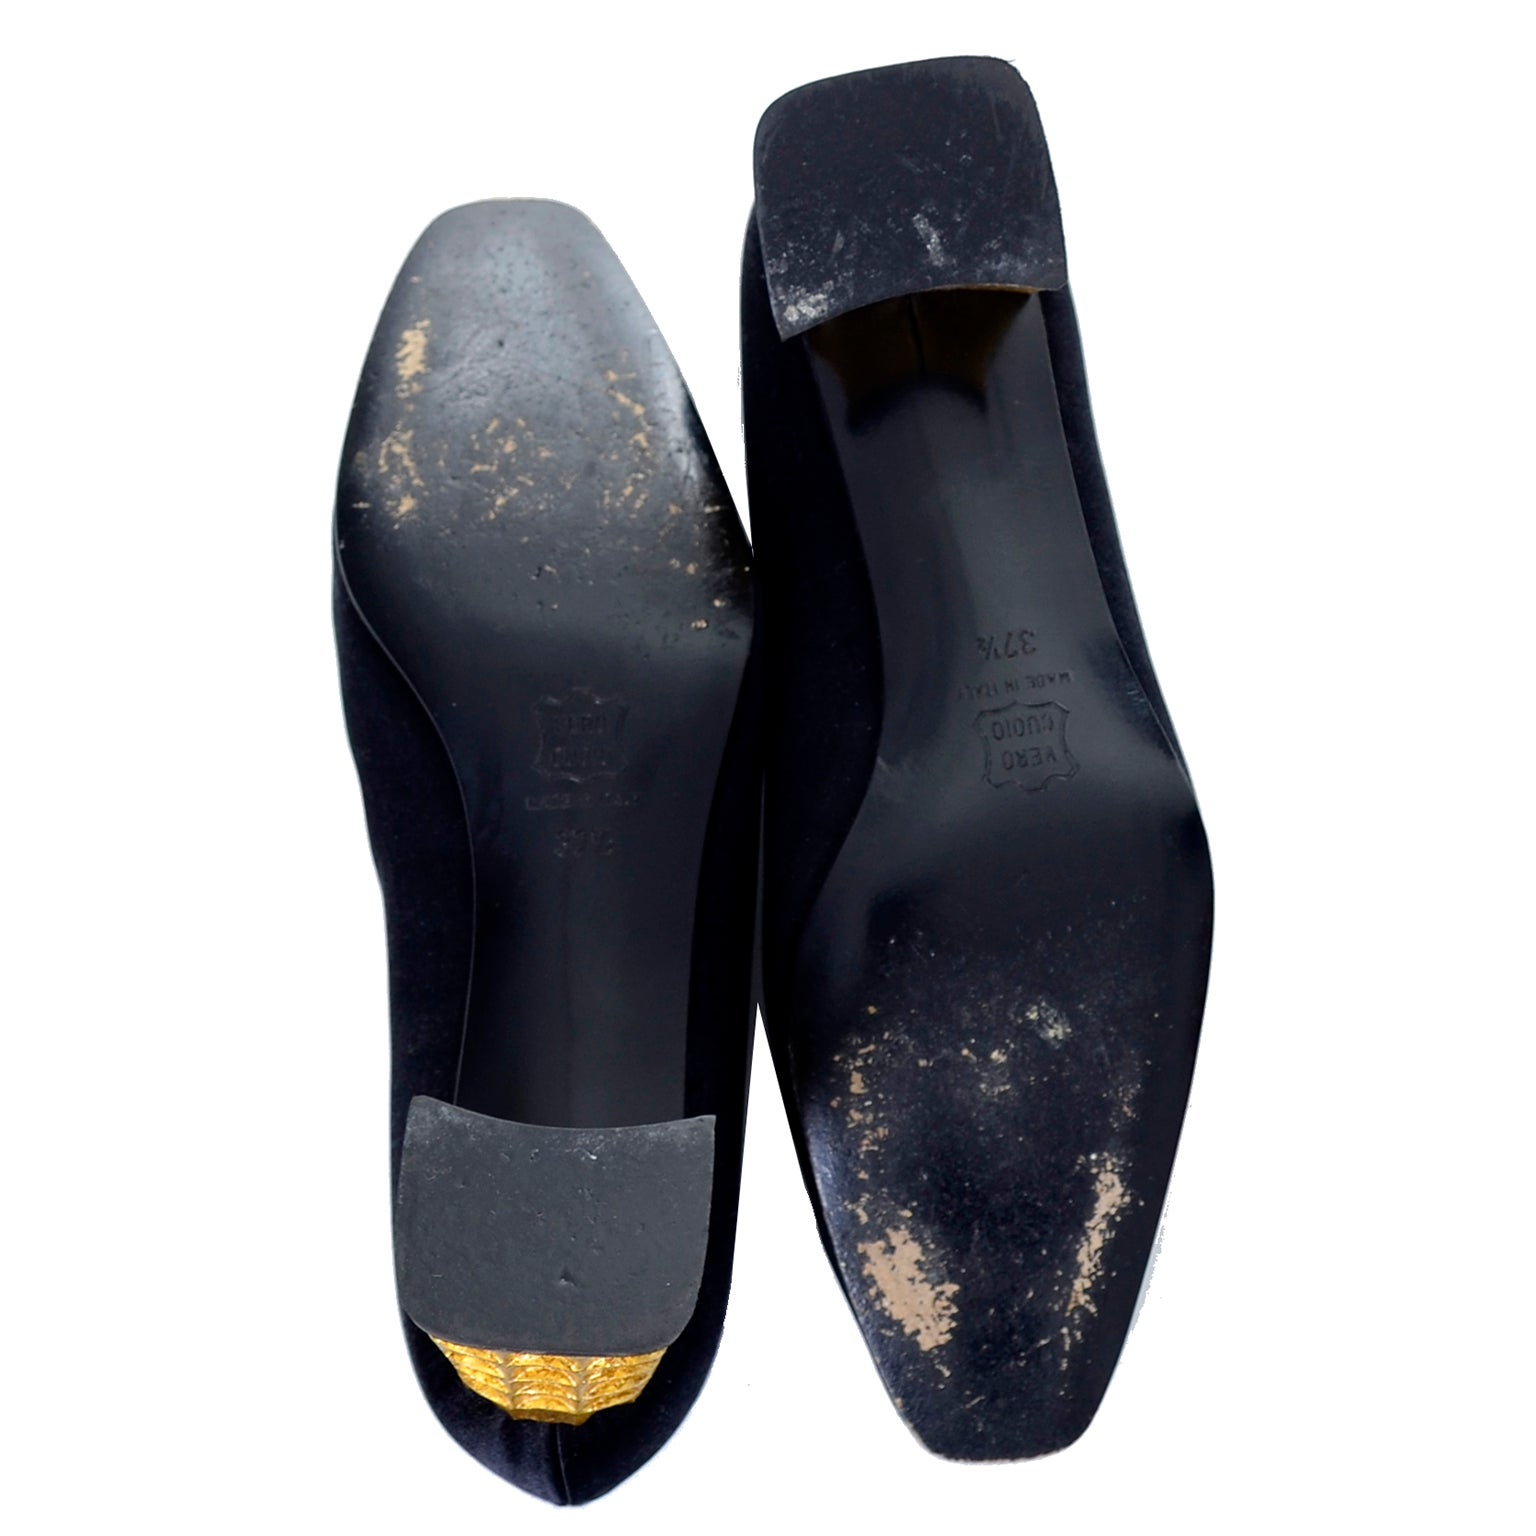 newest 11b16 ad200 Christian Louboutin Documented Vintage Shoes with Gold Leaf Heels